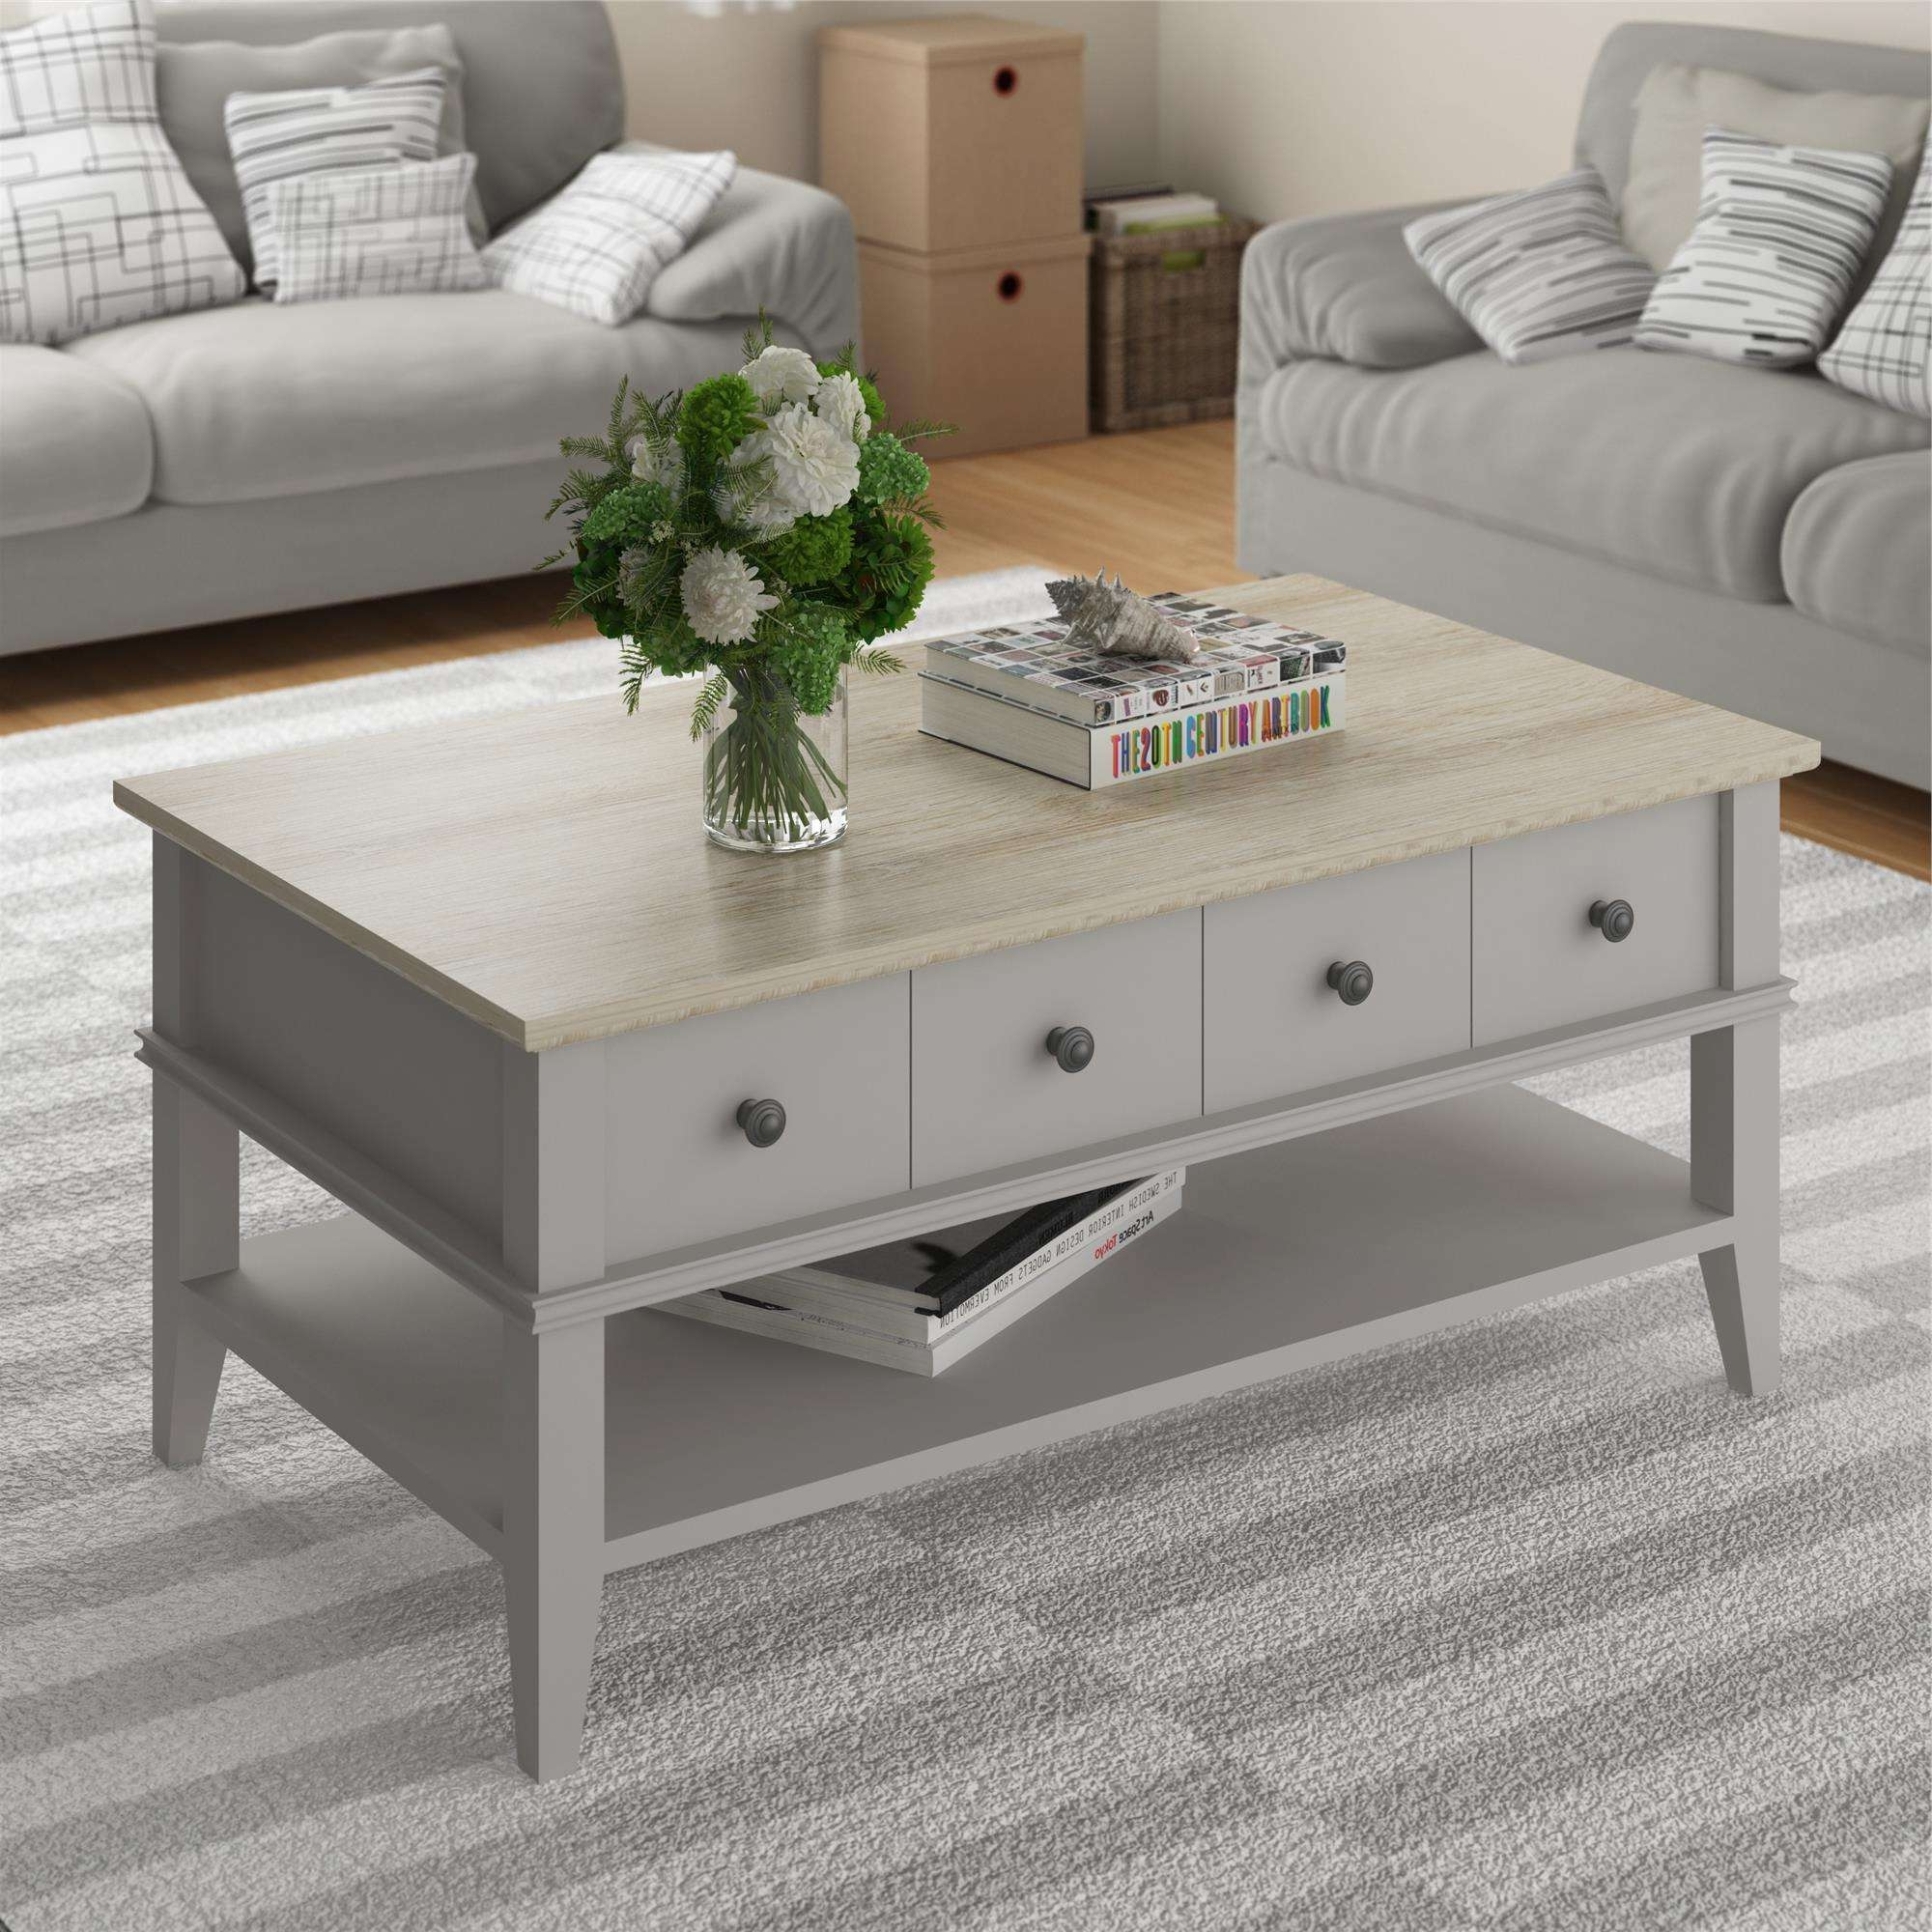 Newport Coffee Table, Taupe/natural (View 16 of 20)